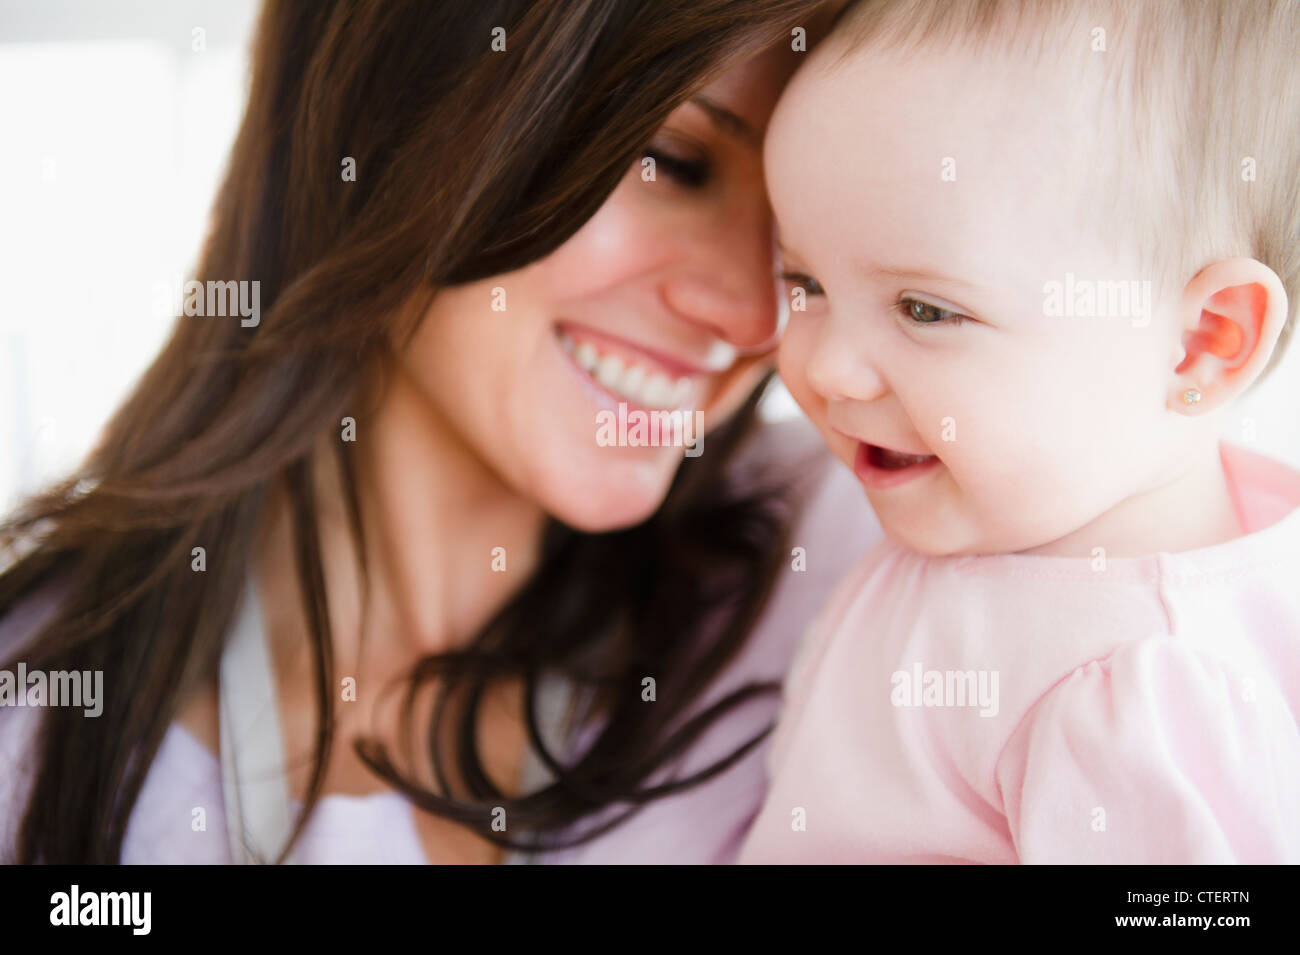 USA, New Jersey, Jersey City, Mother with baby daughter (6-11 months) - Stock Image